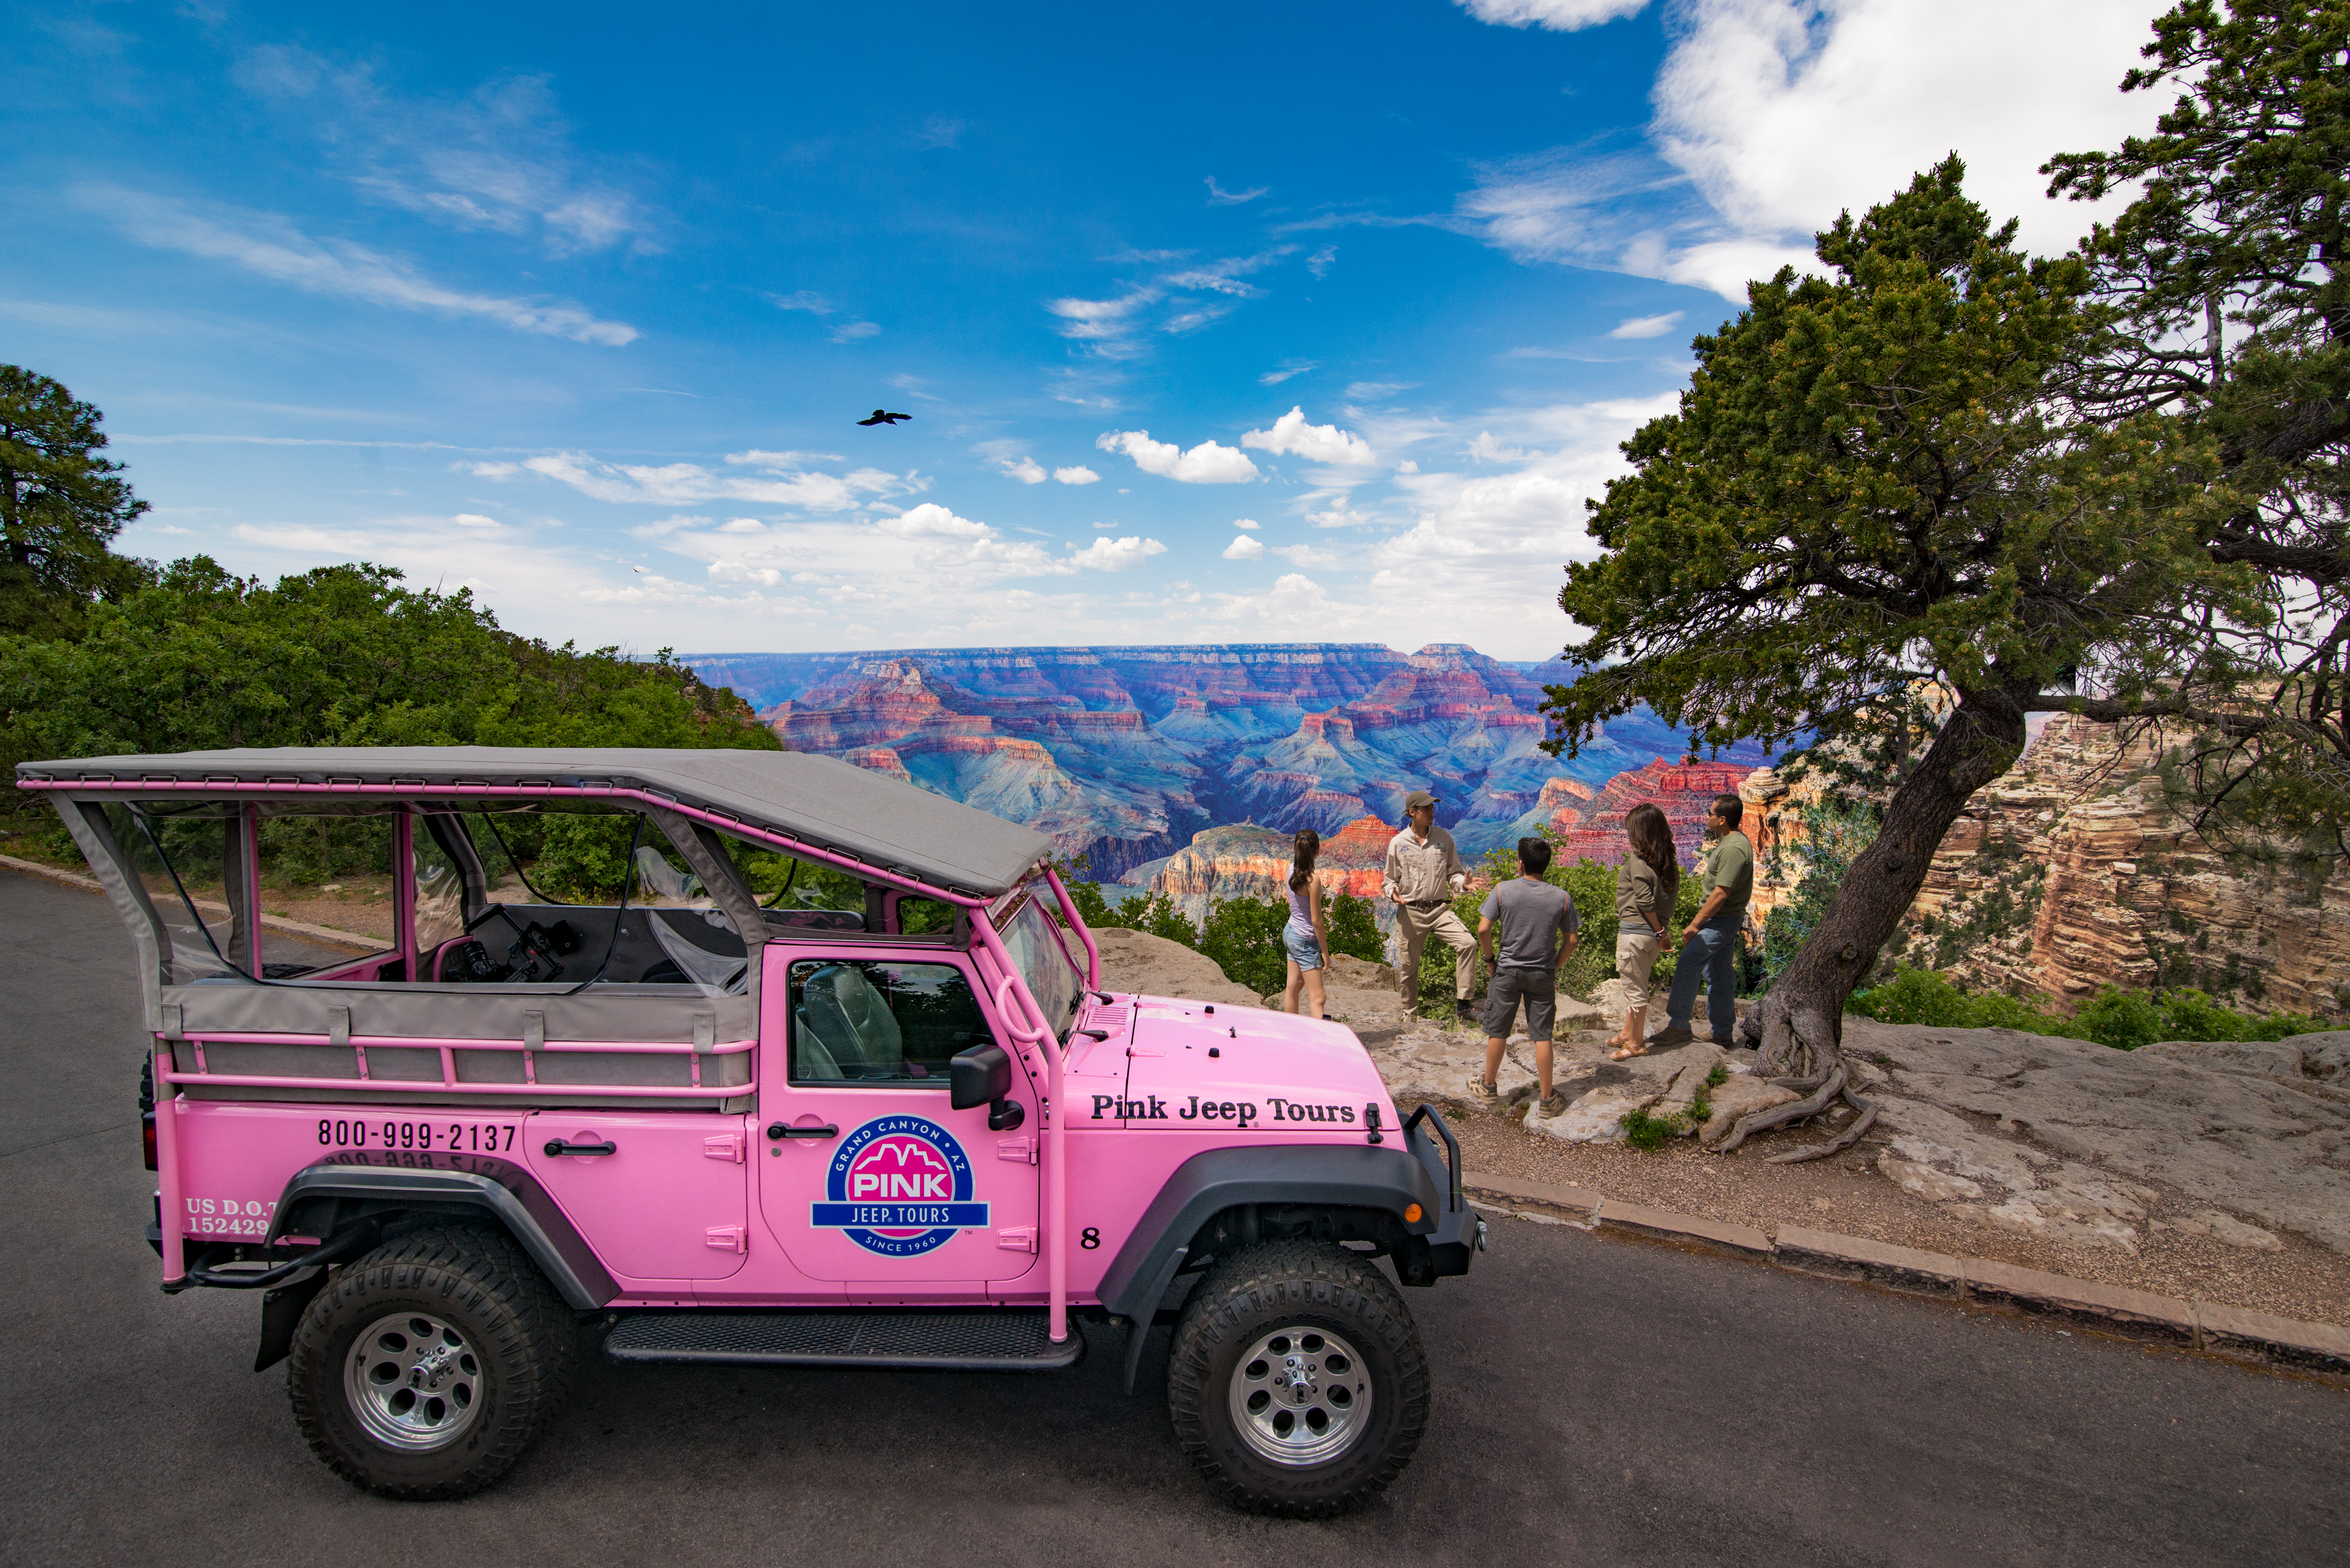 View Larger Image. Pink Jeep Grand Canyon